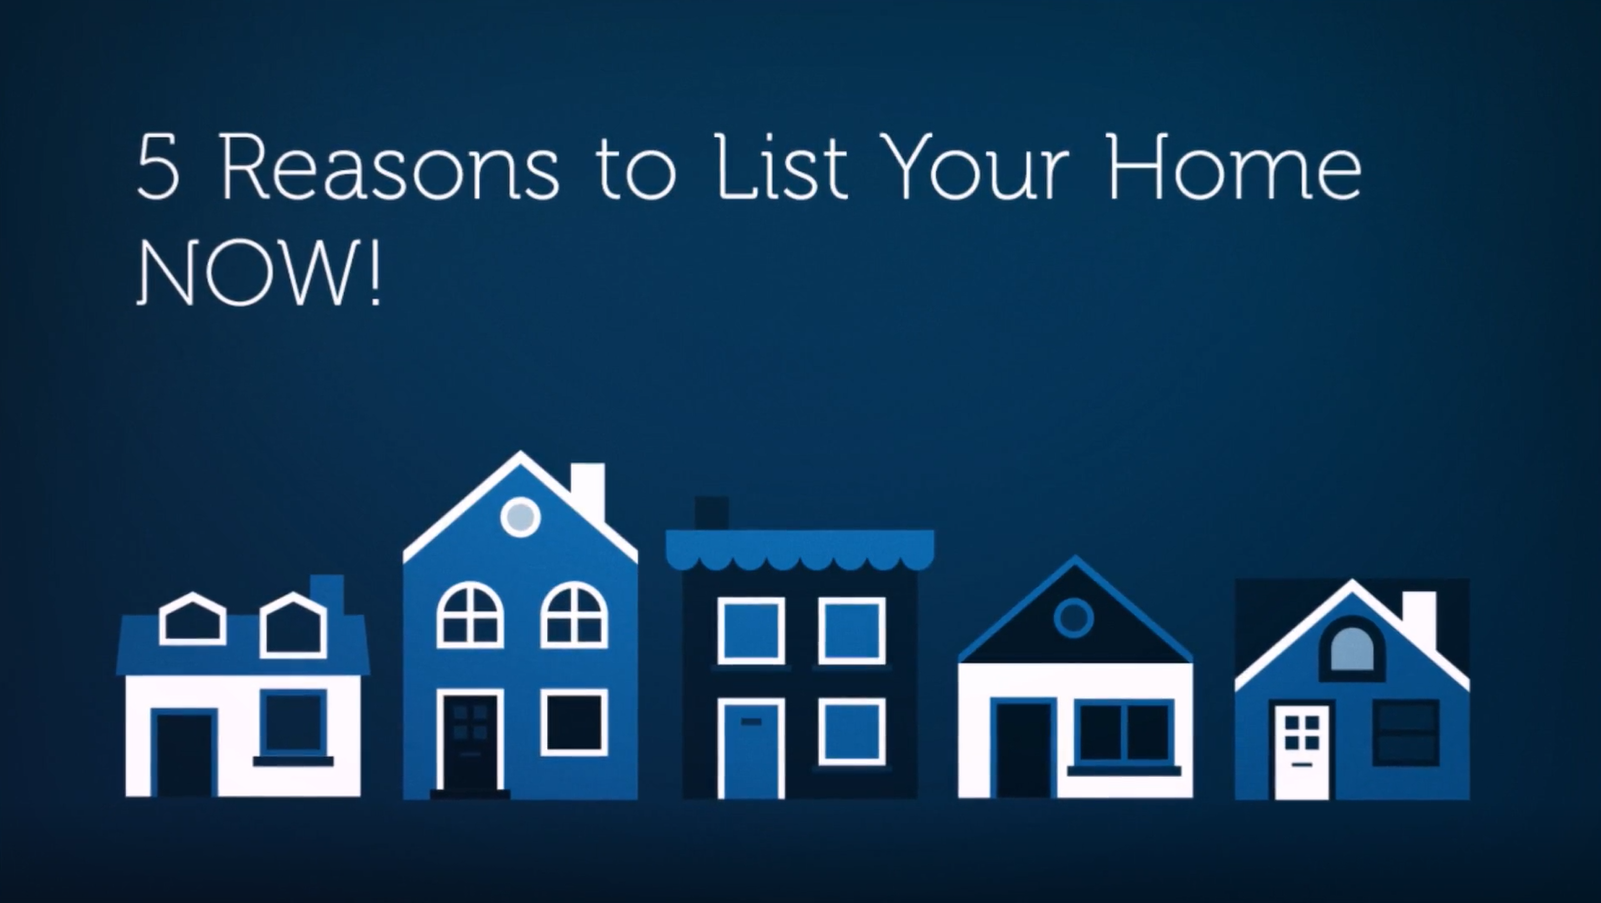 5-reasons-to-list-your-home-now-2020.mp4